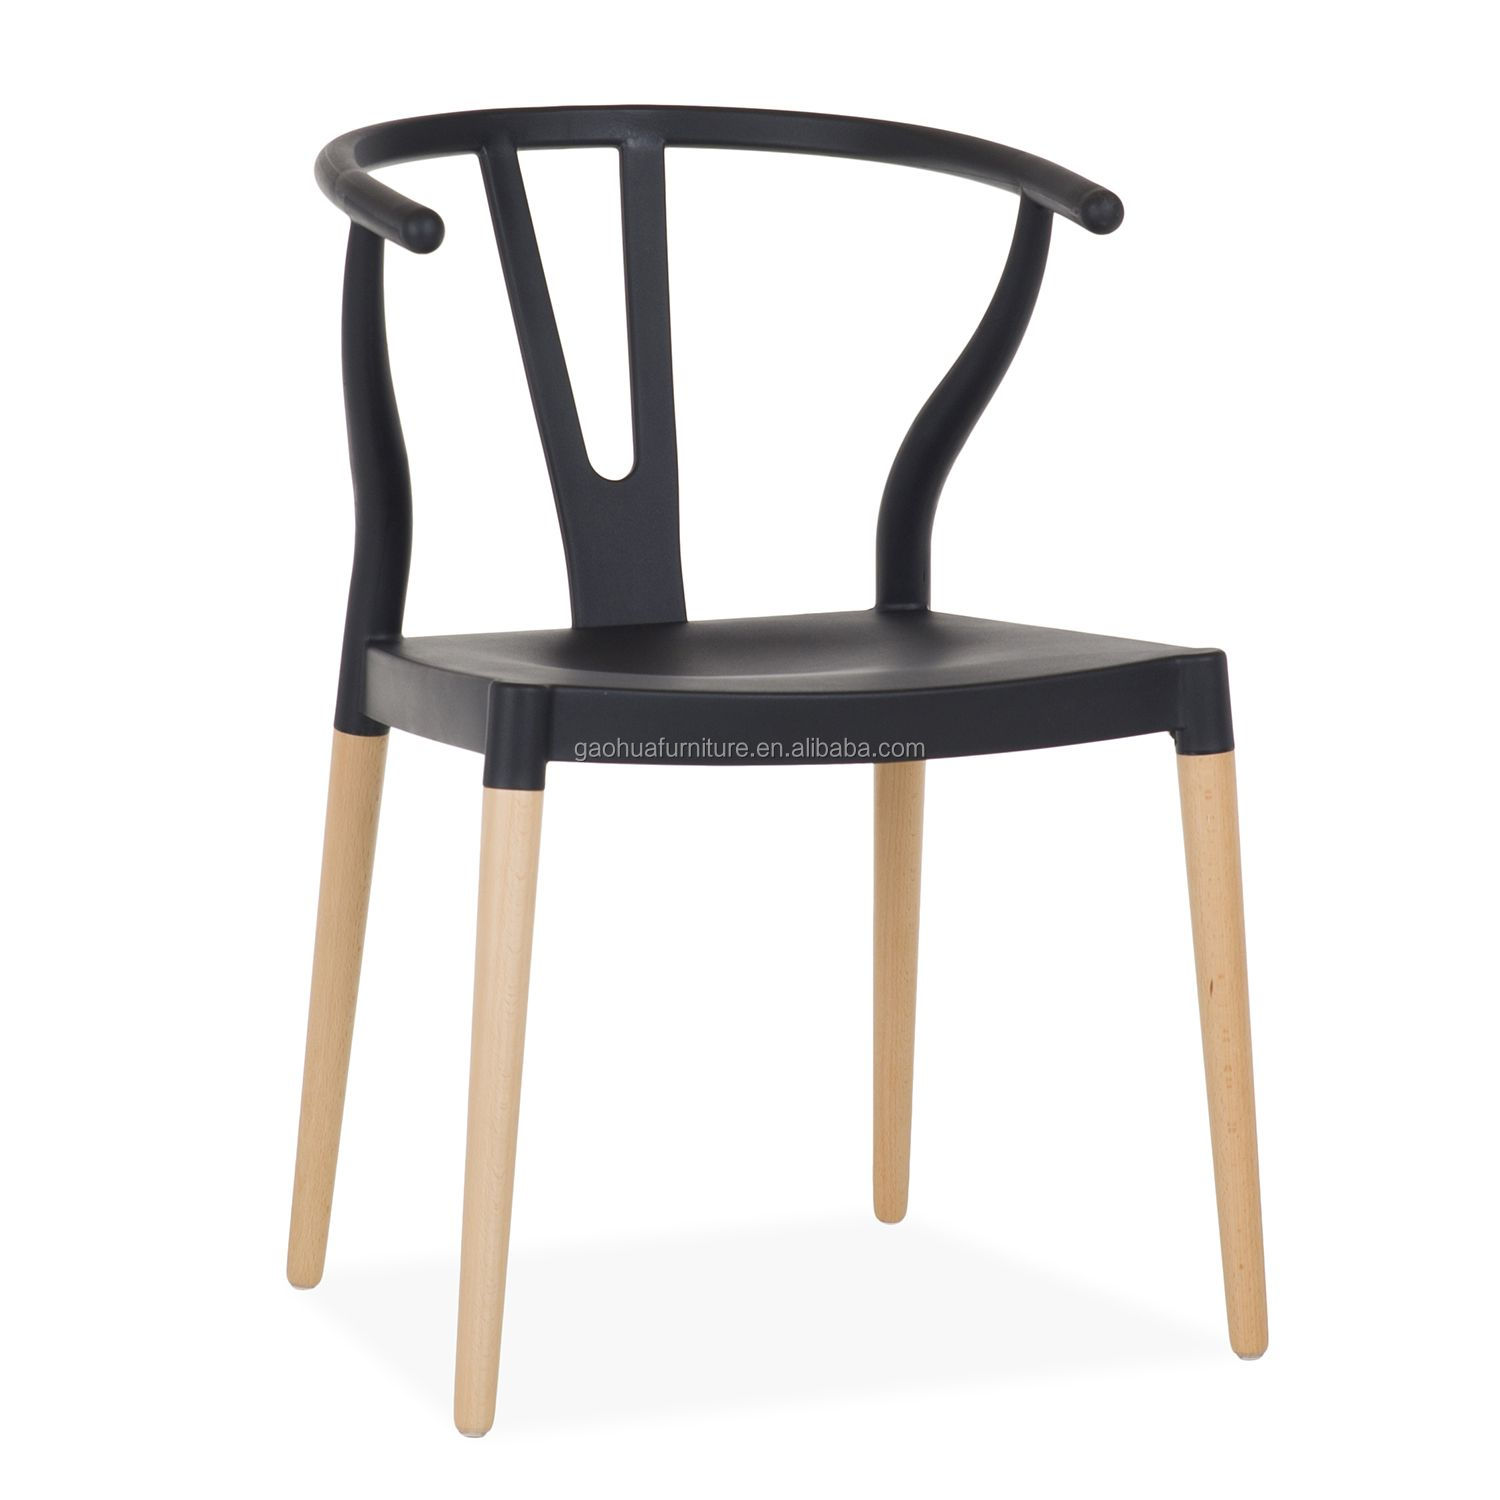 Y Chair Plastic Dining Room Chair Black Modern Buy Plastic Dining Chair Modern Dining Room Chairs Black Dining Chair Product On Alibaba Com